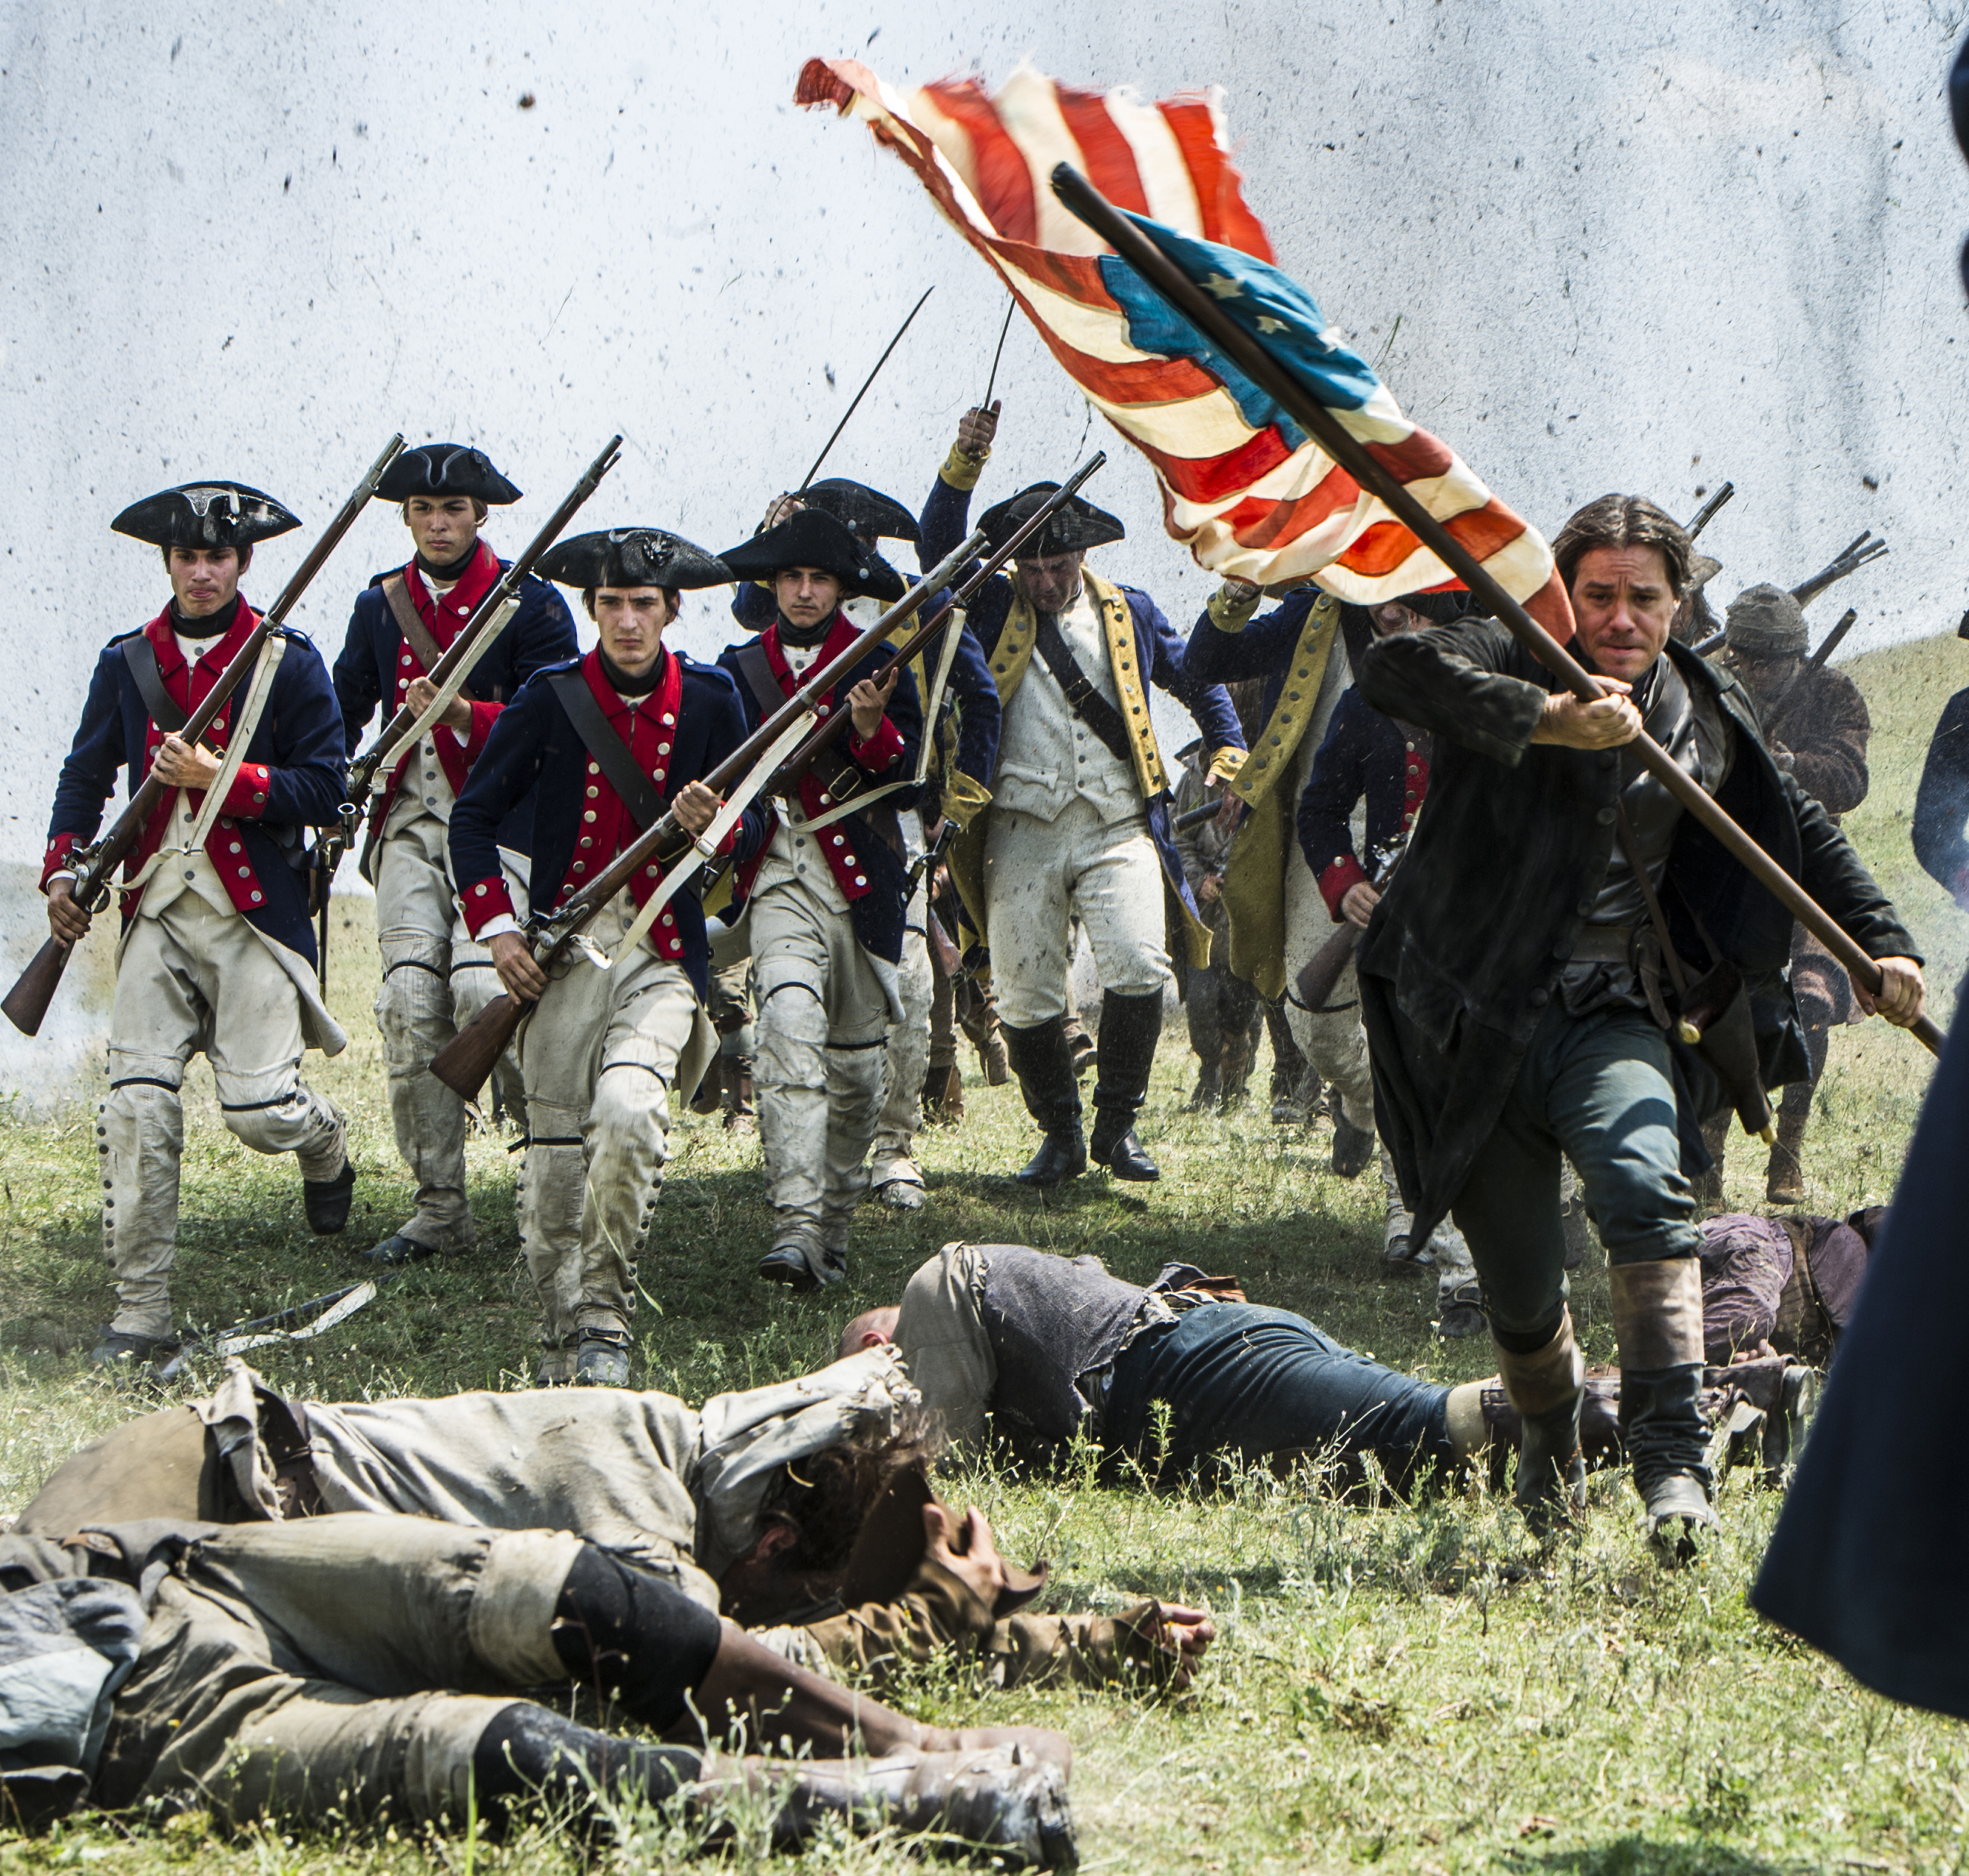 Sons_of_Liberty_promotional_photo_2.jpg